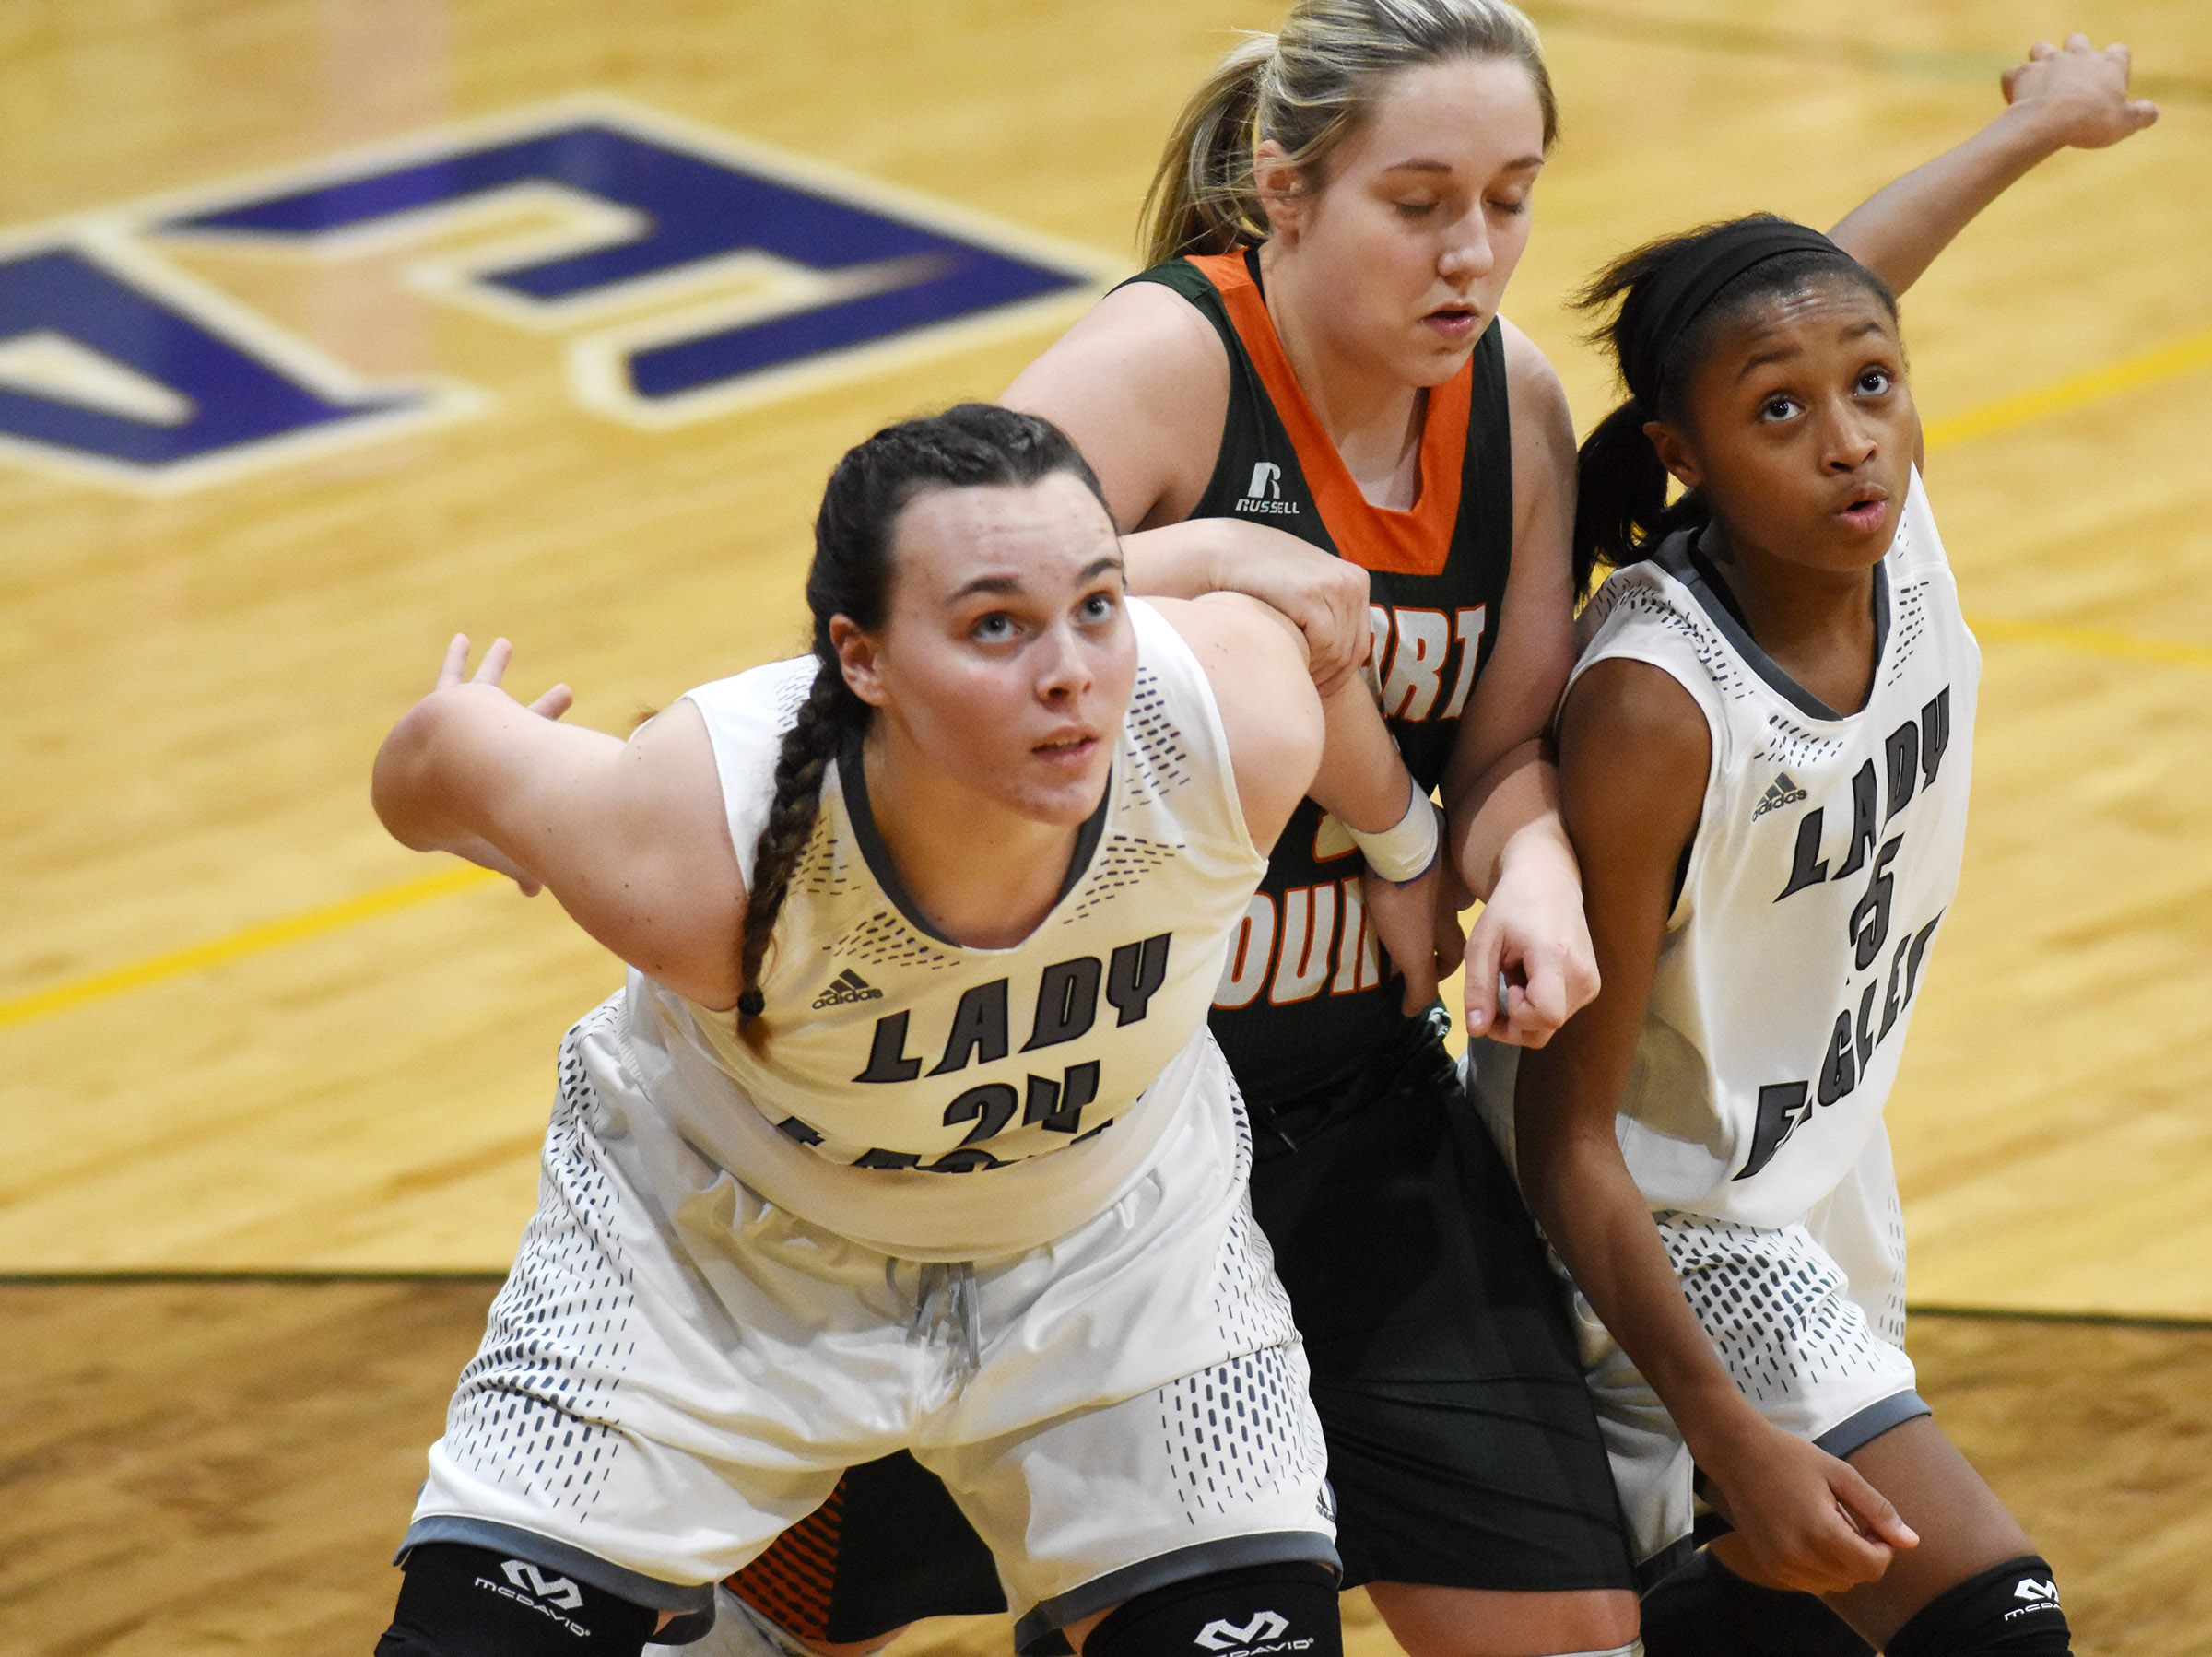 CHS sophomore Katelyn Miller, at left, and Campbellsville Middle School eighth-grader Bri Gowdy fight for the rebound.